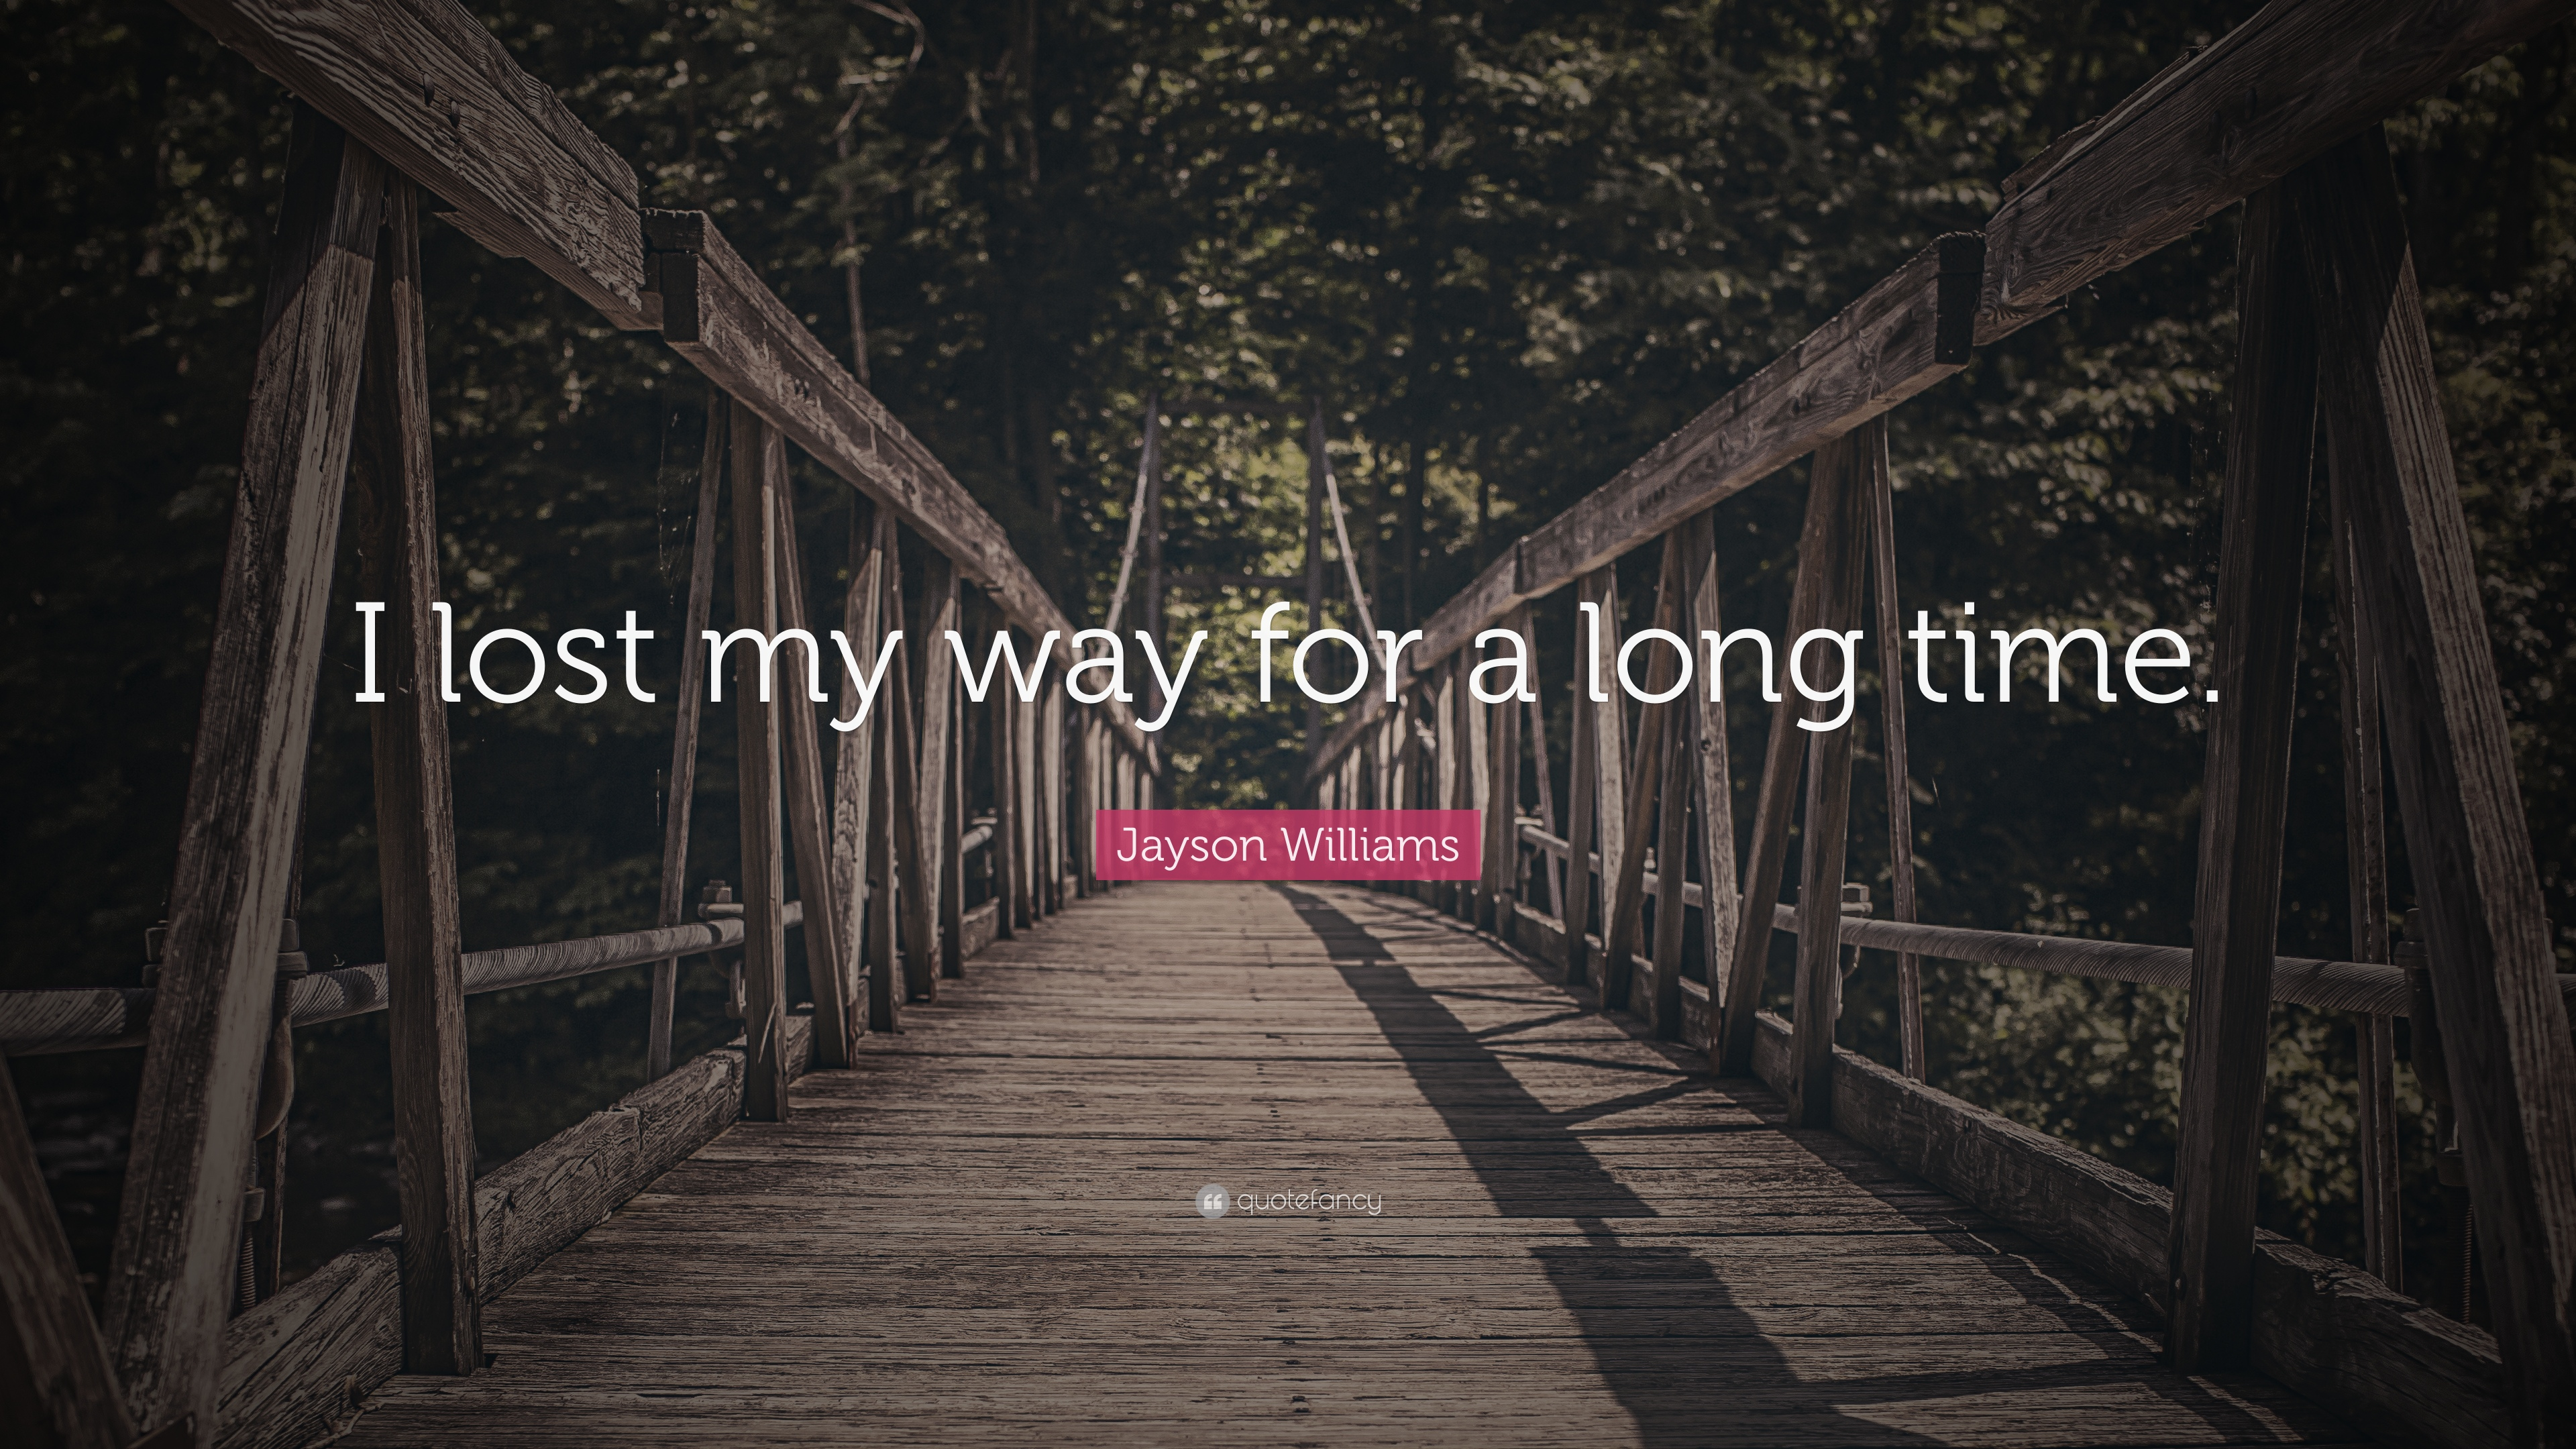 jayson williams quote i lost my way for a long time 9